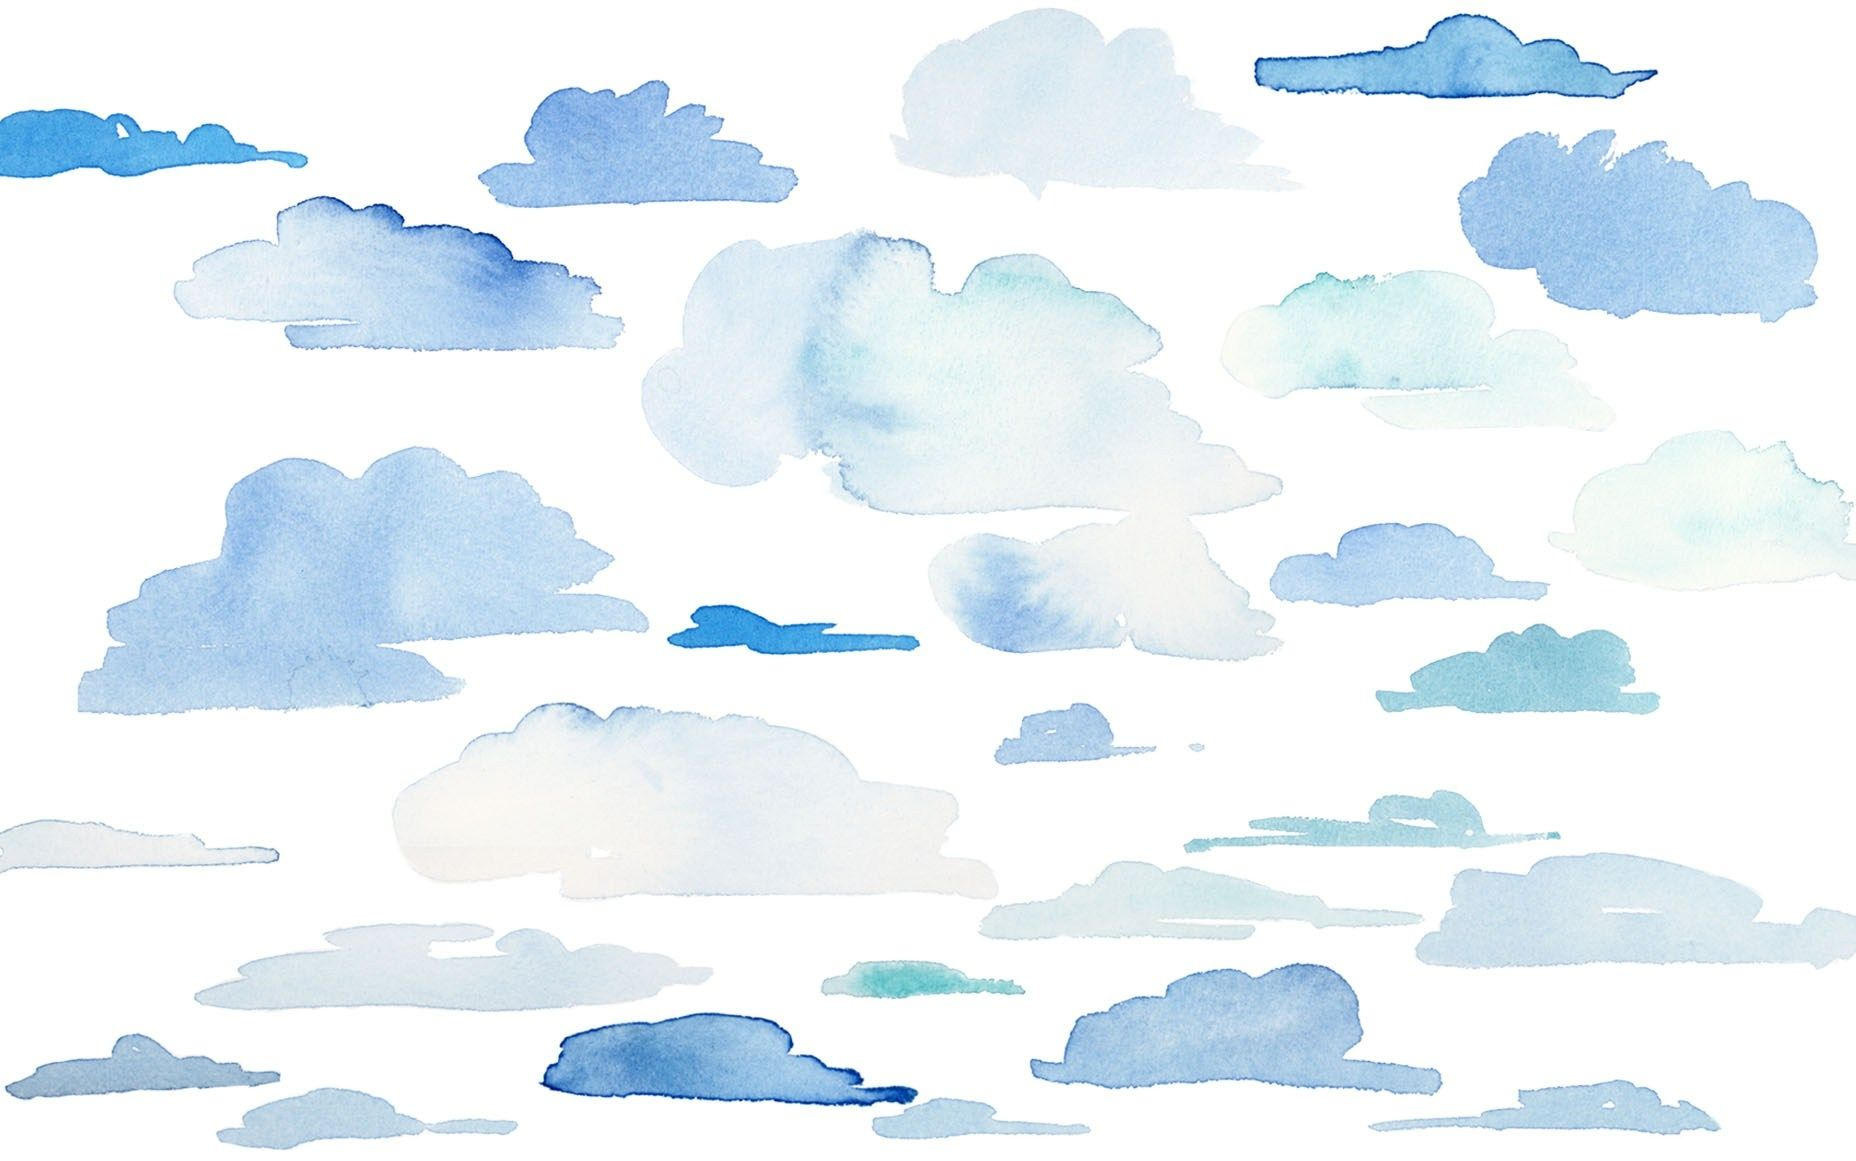 New Desktop Background Watercolor Watercolor Desktop Wallpaper